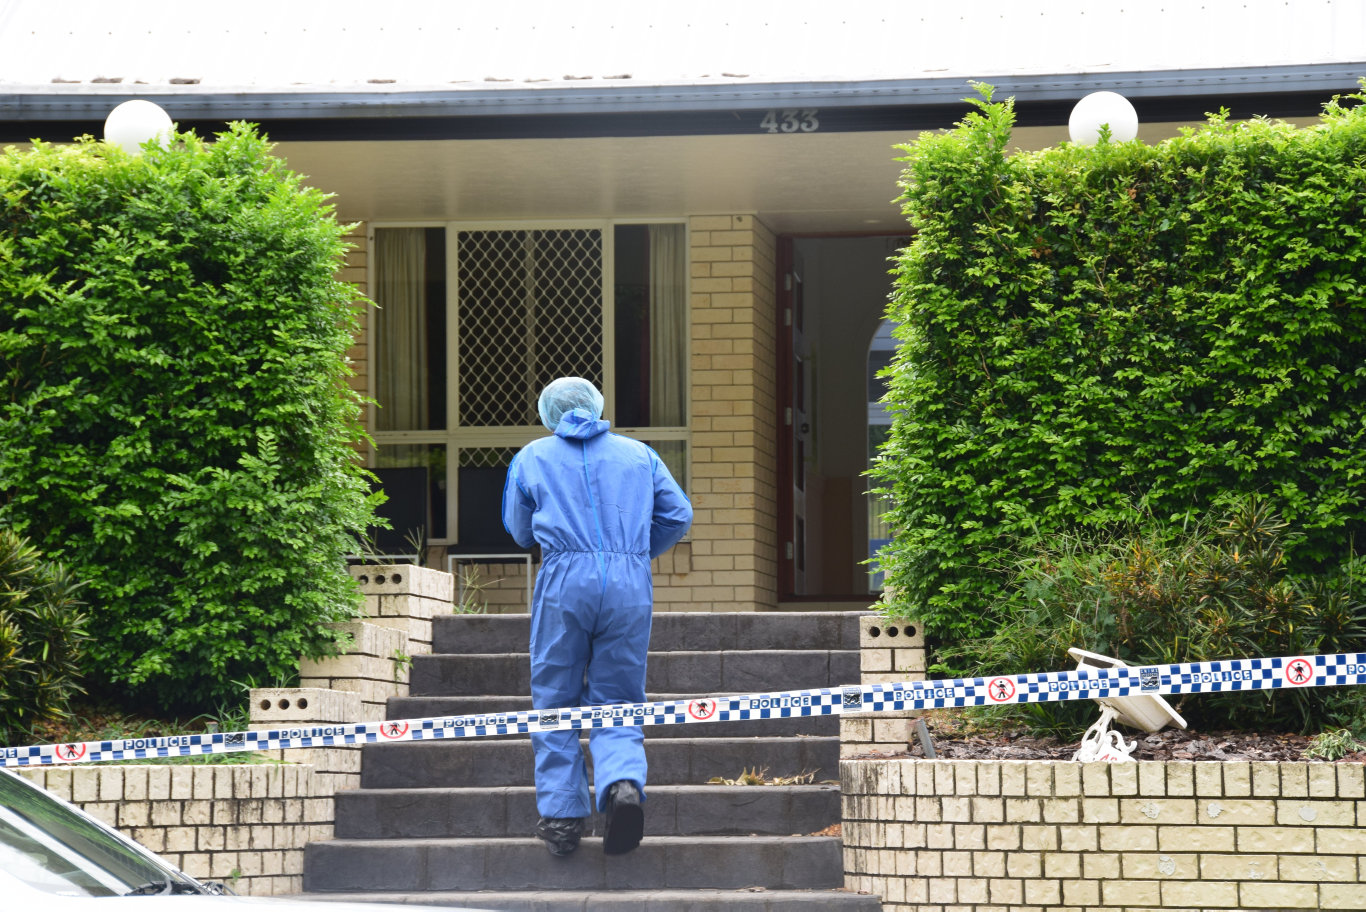 Forensic teams are still going through the Frenchville St home were two people were found dead on Monday night.